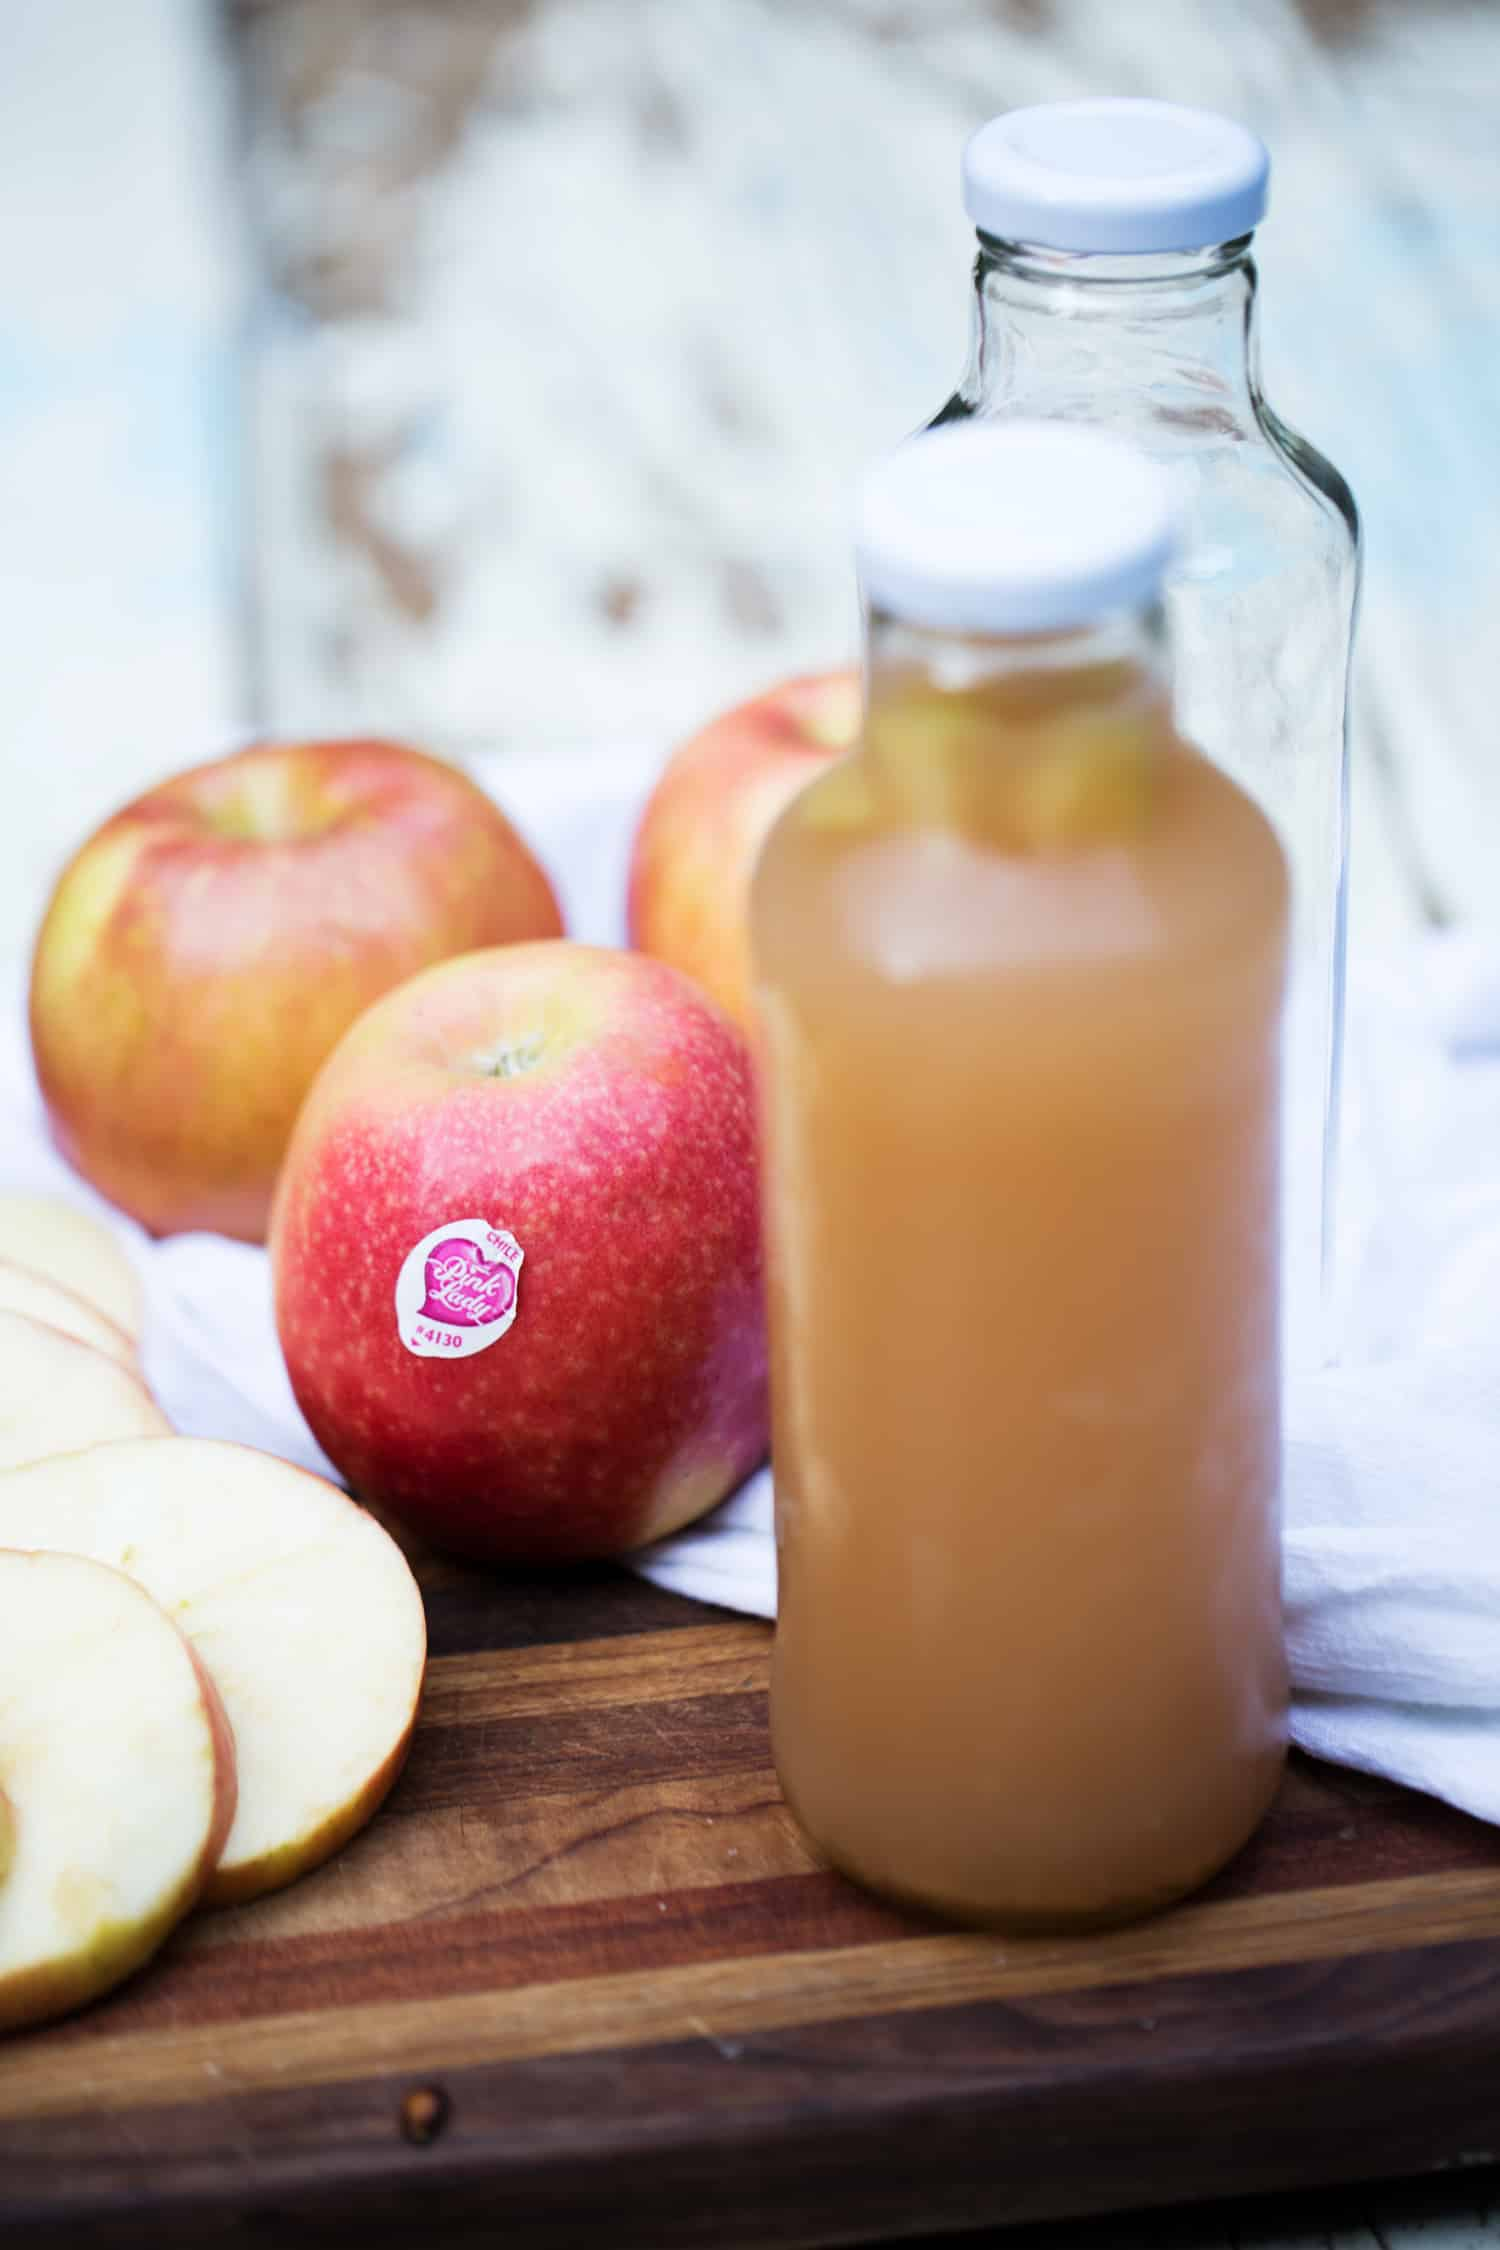 Pink Lady Apple Cider Kombucha made with in season apples and fresh pressed cider, is an absolutely delicious way to enjoy this fizzy probiotic rich beverage.